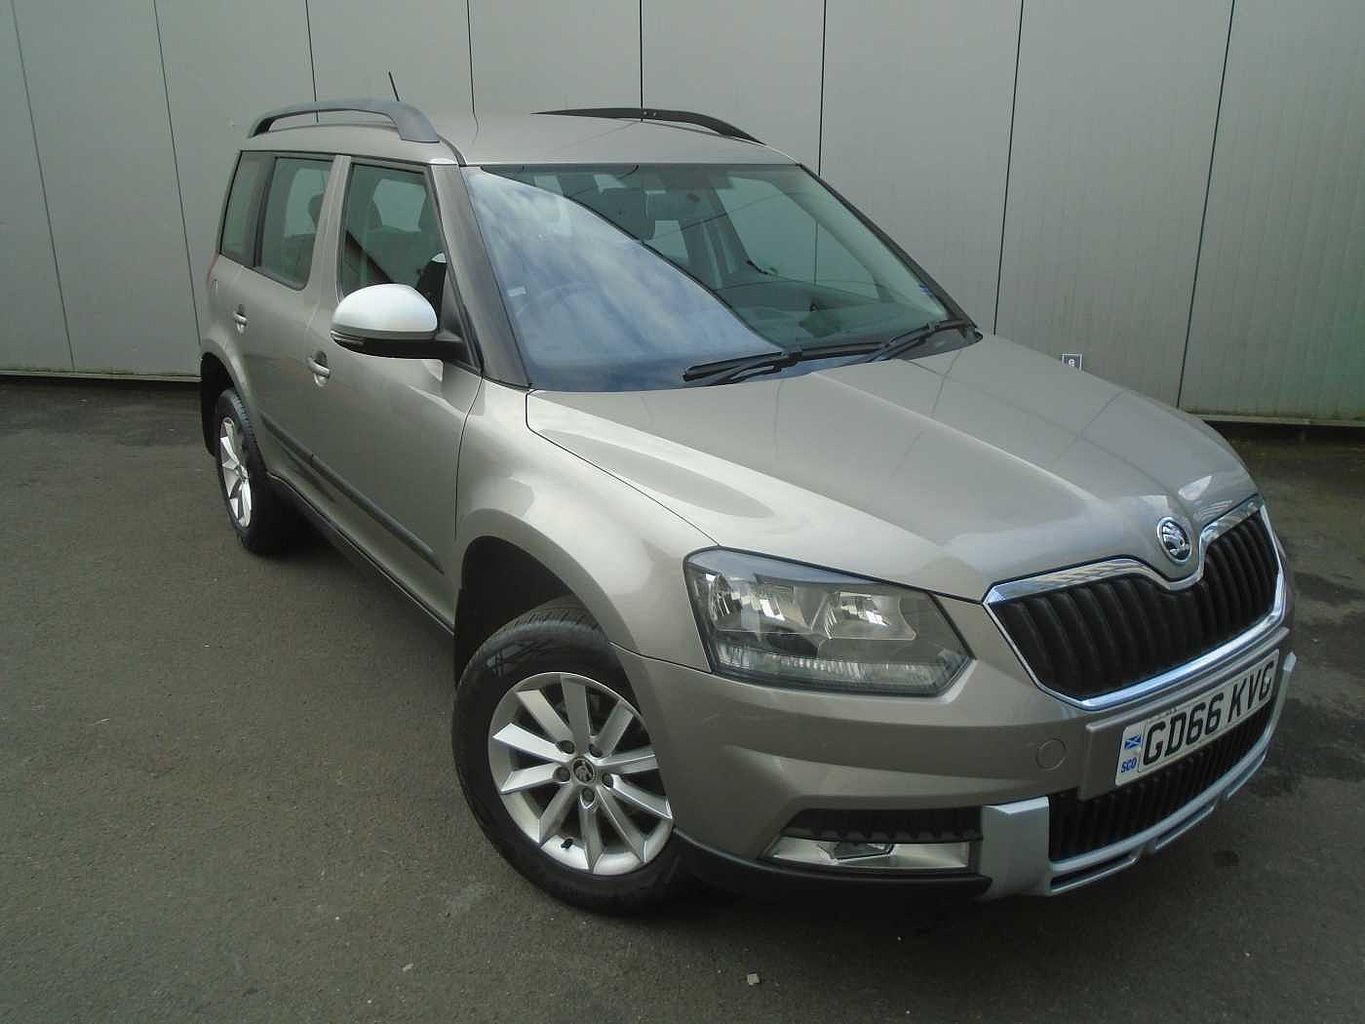 ŠKODA Yeti Outdoor S 1.2 TSI 110 PS 6G Man